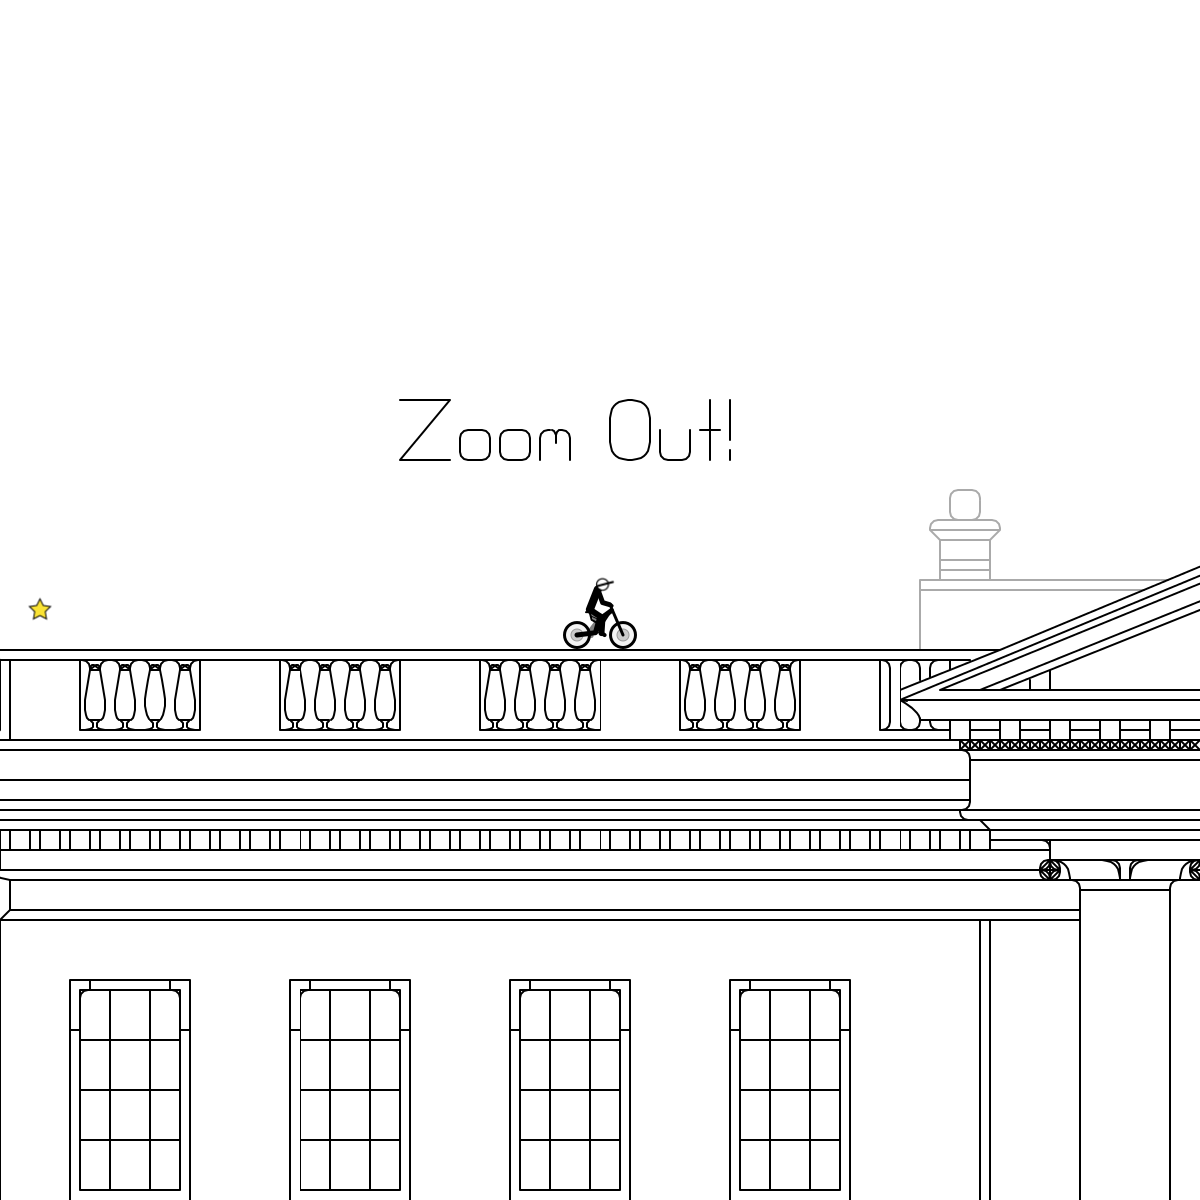 The White House Epic Build By Dryft Free Rider Hd Track